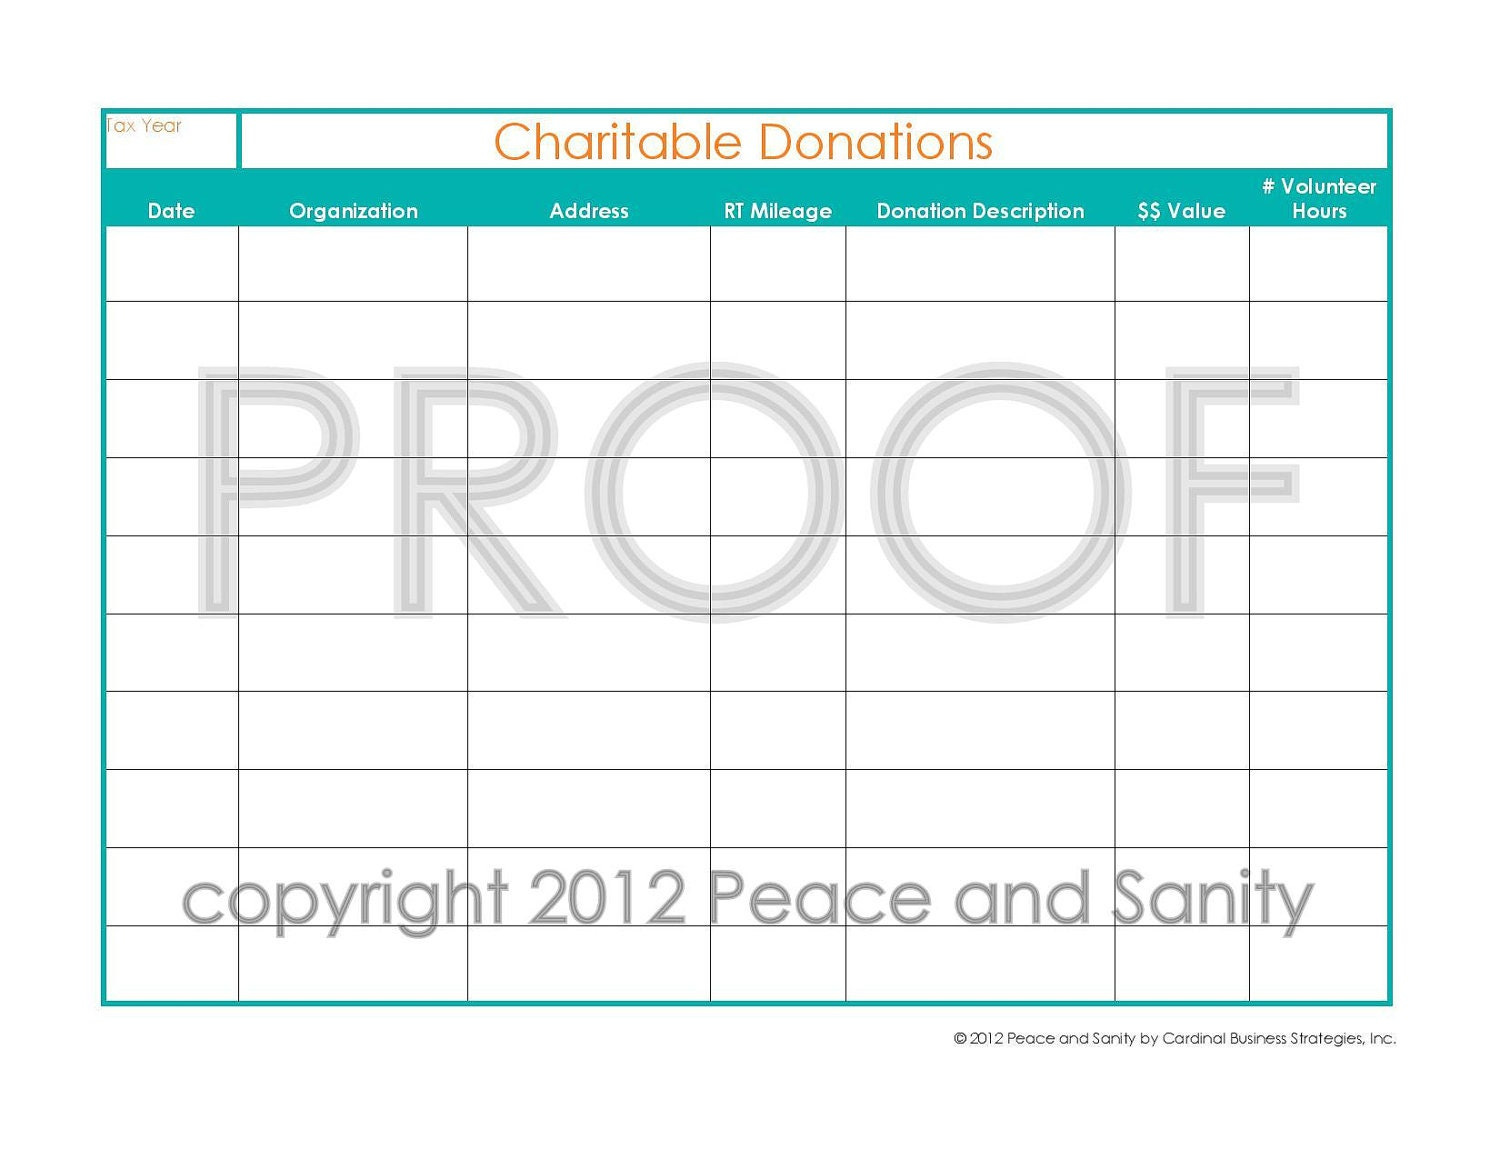 Charitable Donations Worksheet Printable PDF by PeaceandSanity Images ...